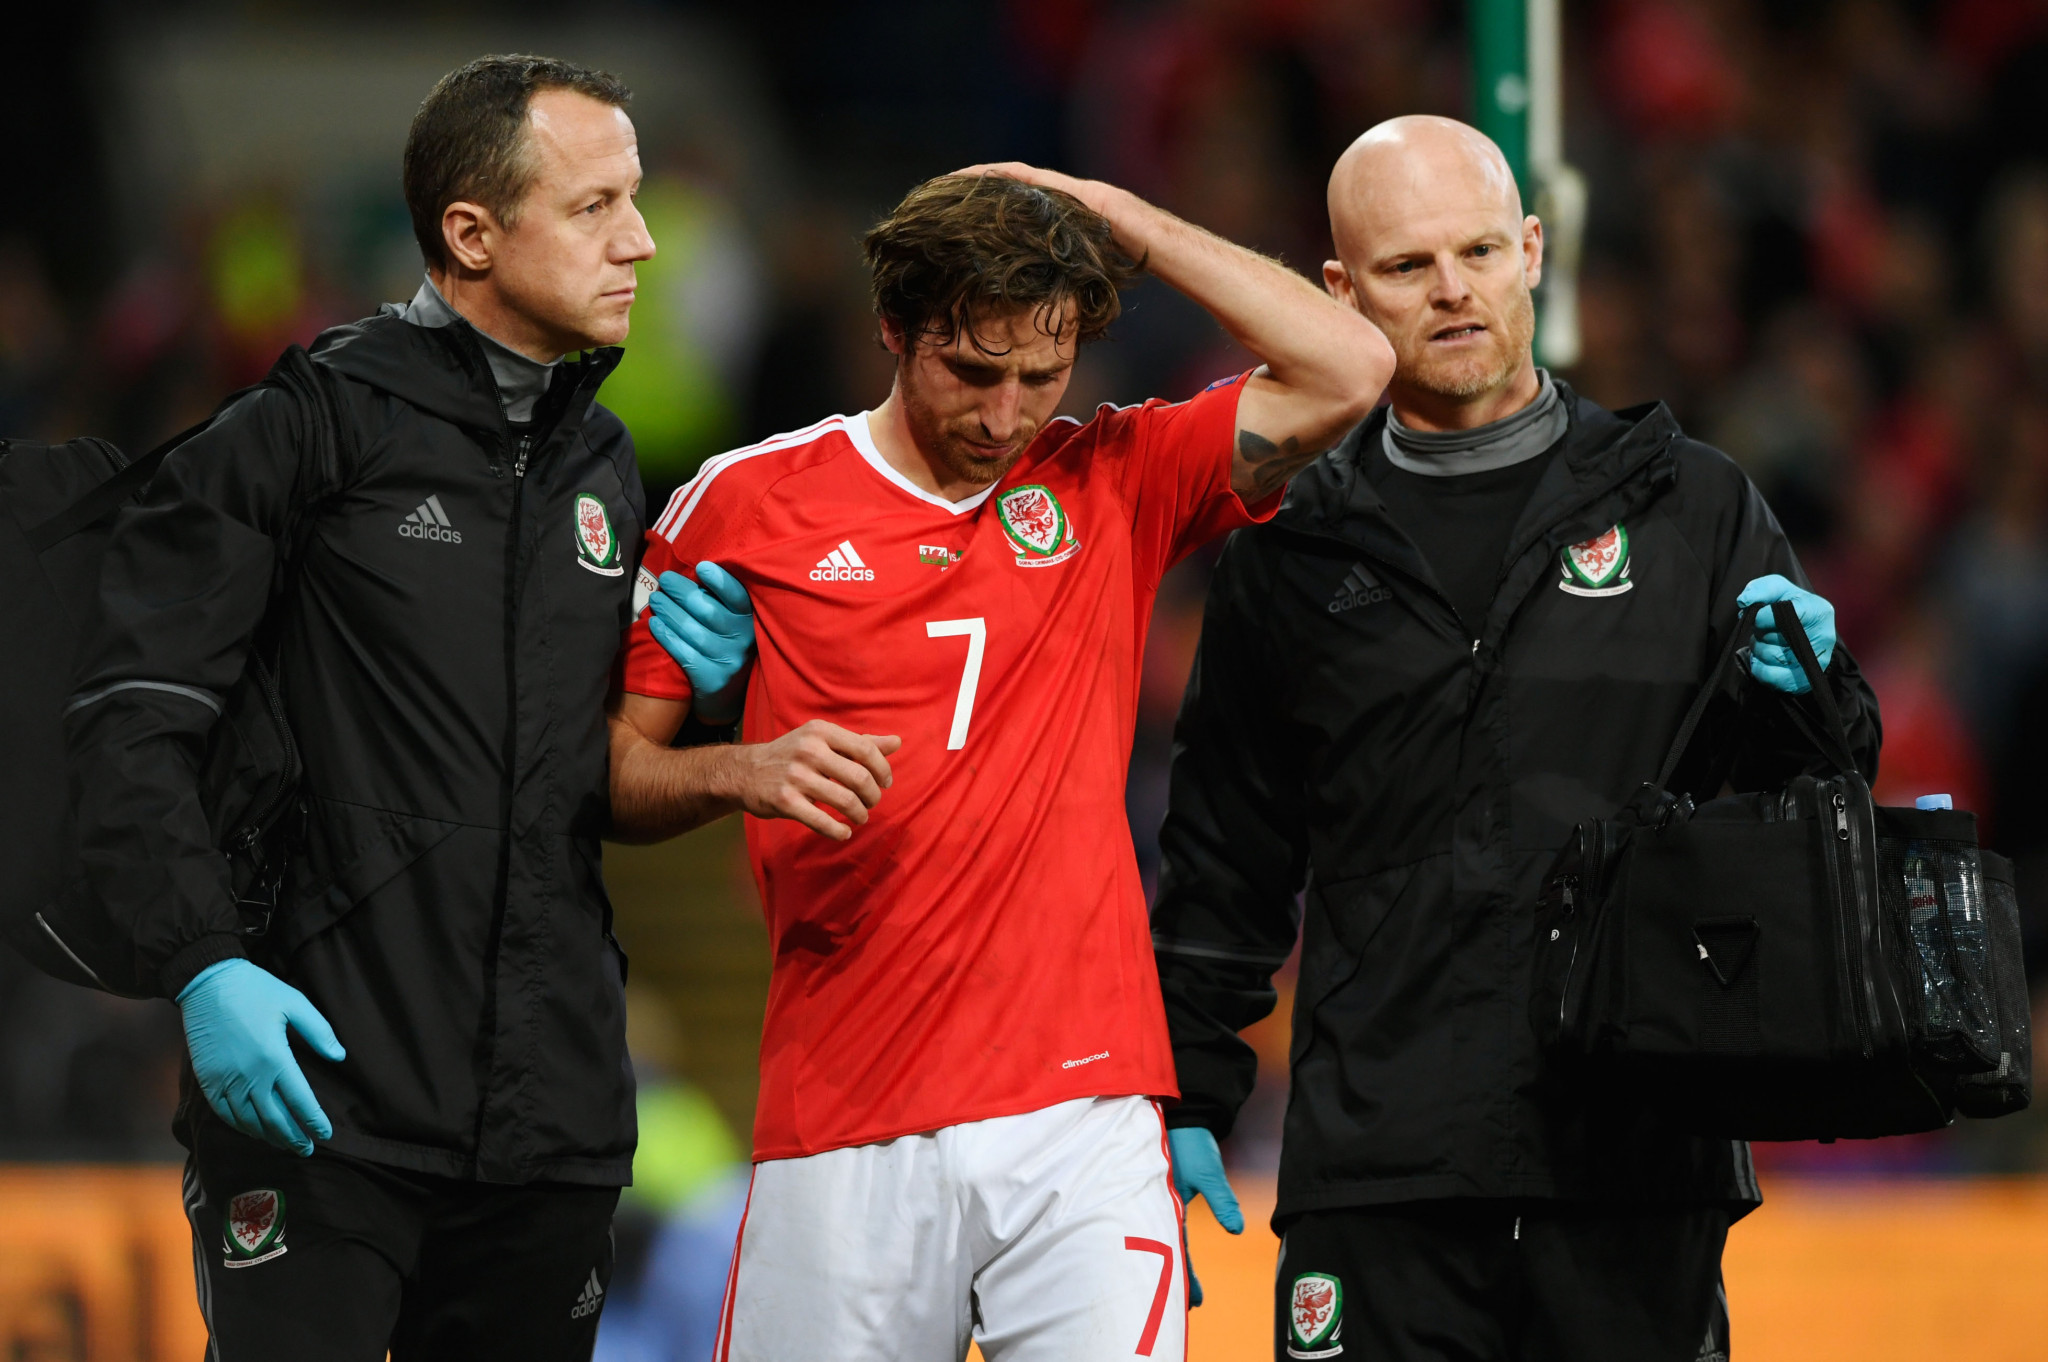 Additional substitutions for concussion in football could be trialed from January